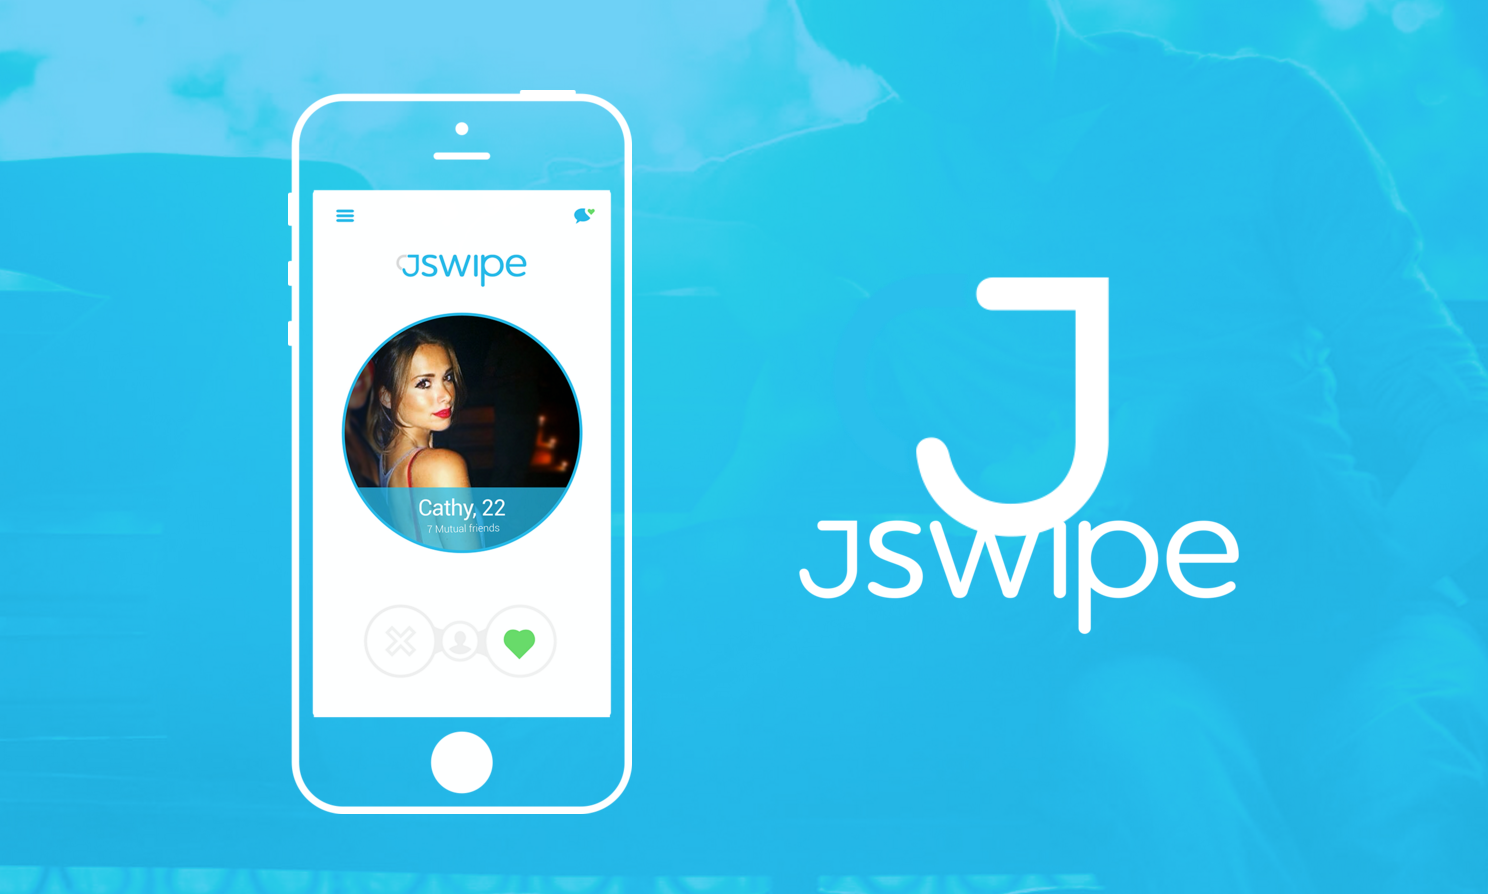 JSwipe Adds Premium Service To Help Owner Spark Networks Push Growth